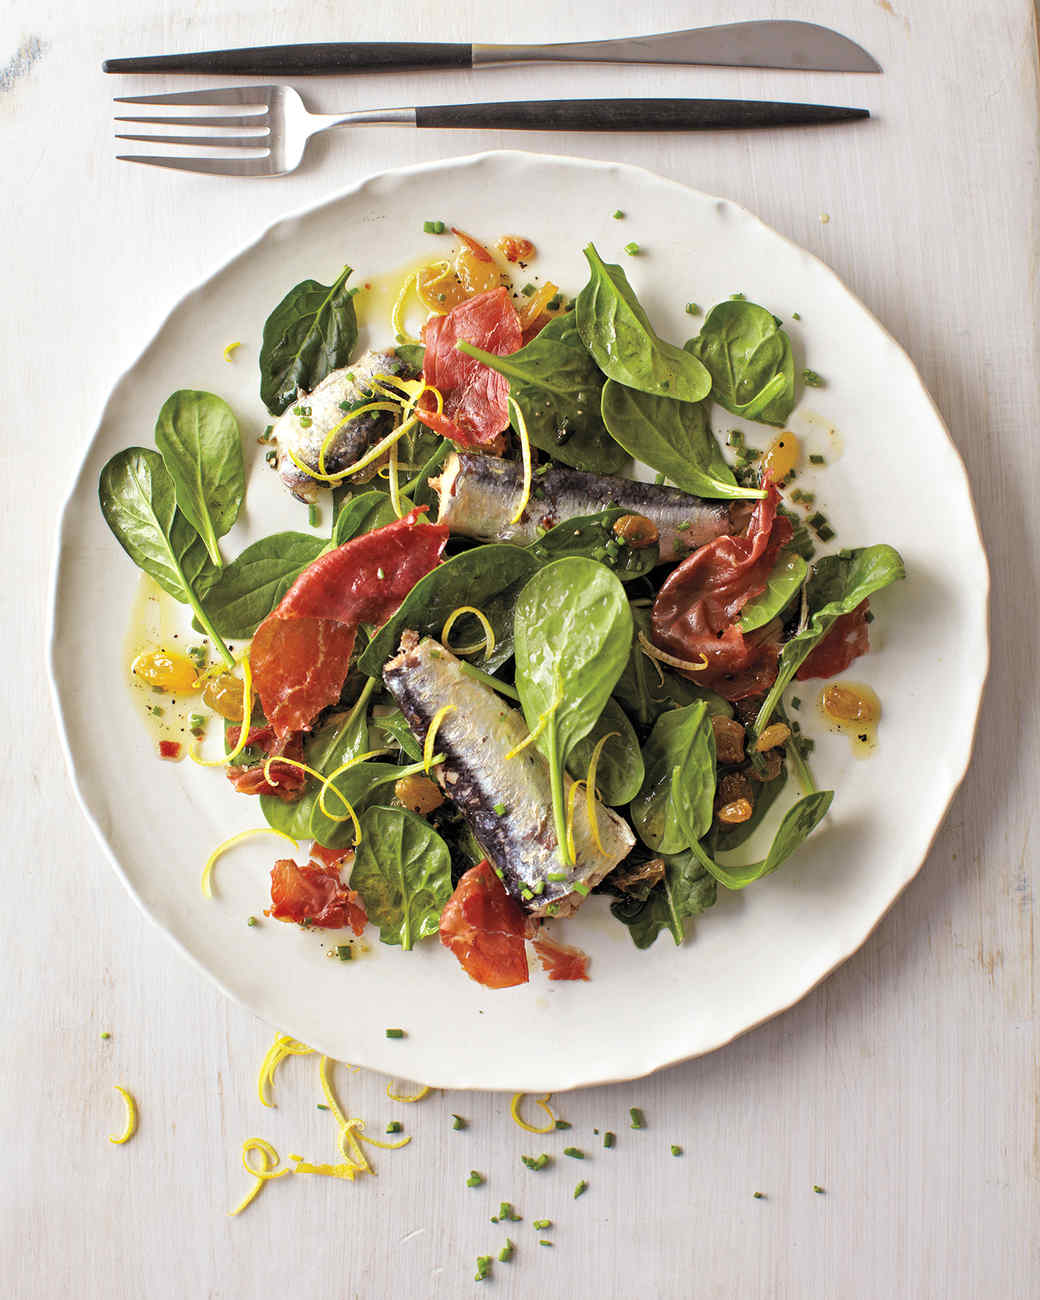 Spinach Salad with Sardines and Crispy Prosciutto